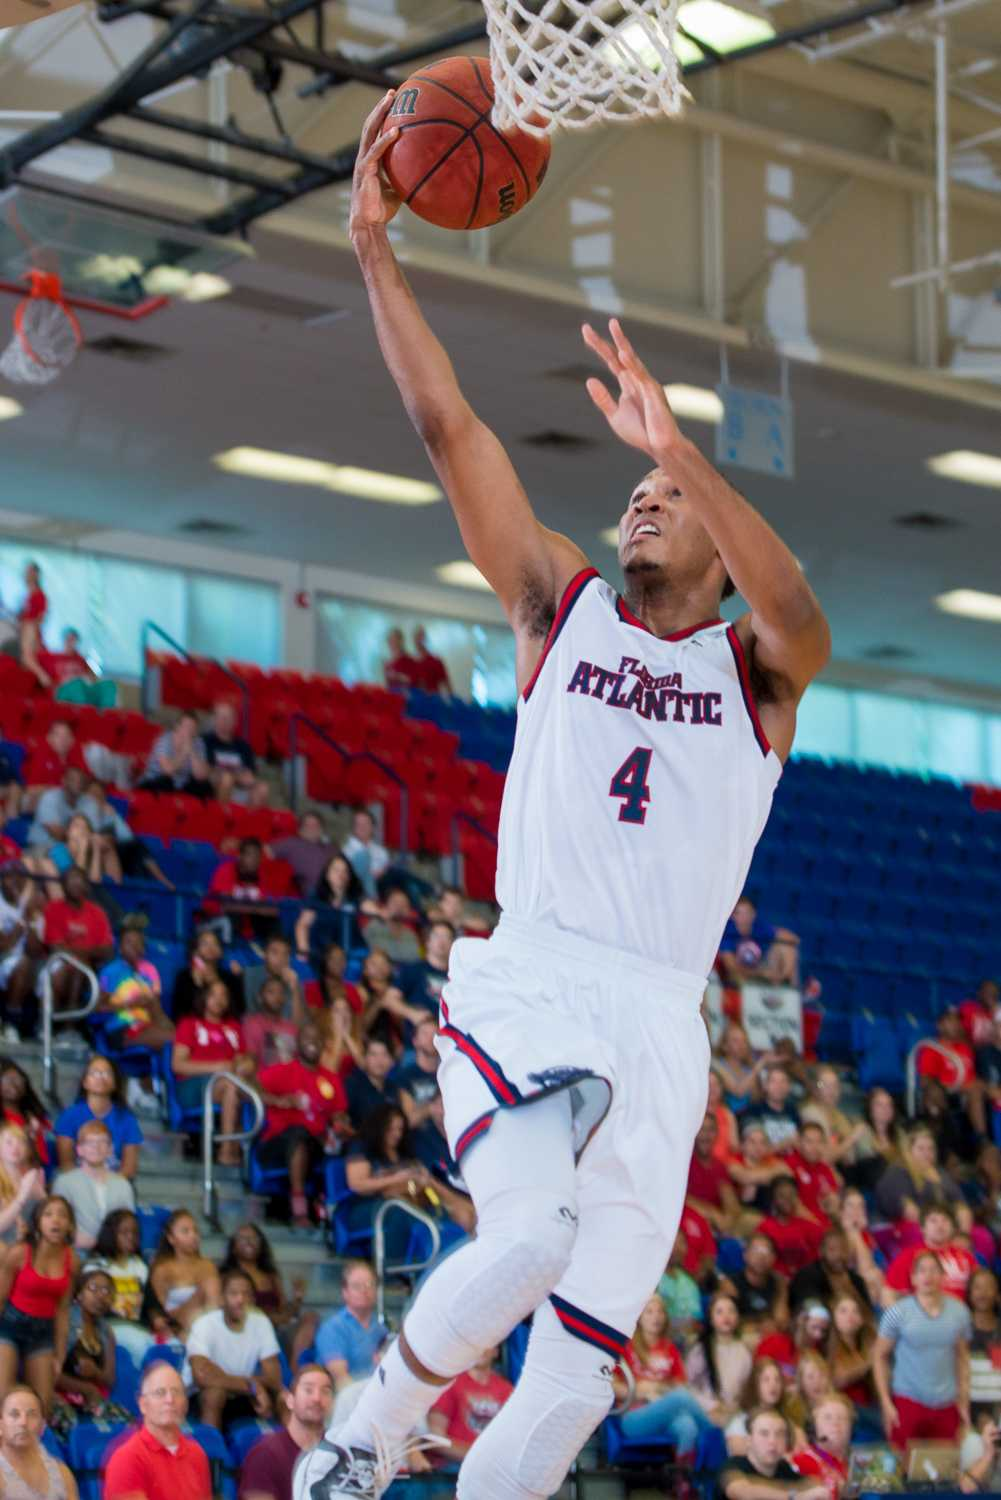 FAU freshman guard Justin Massey (4) ends the first half with a successful layup to bring the score to 25-28 FIU.